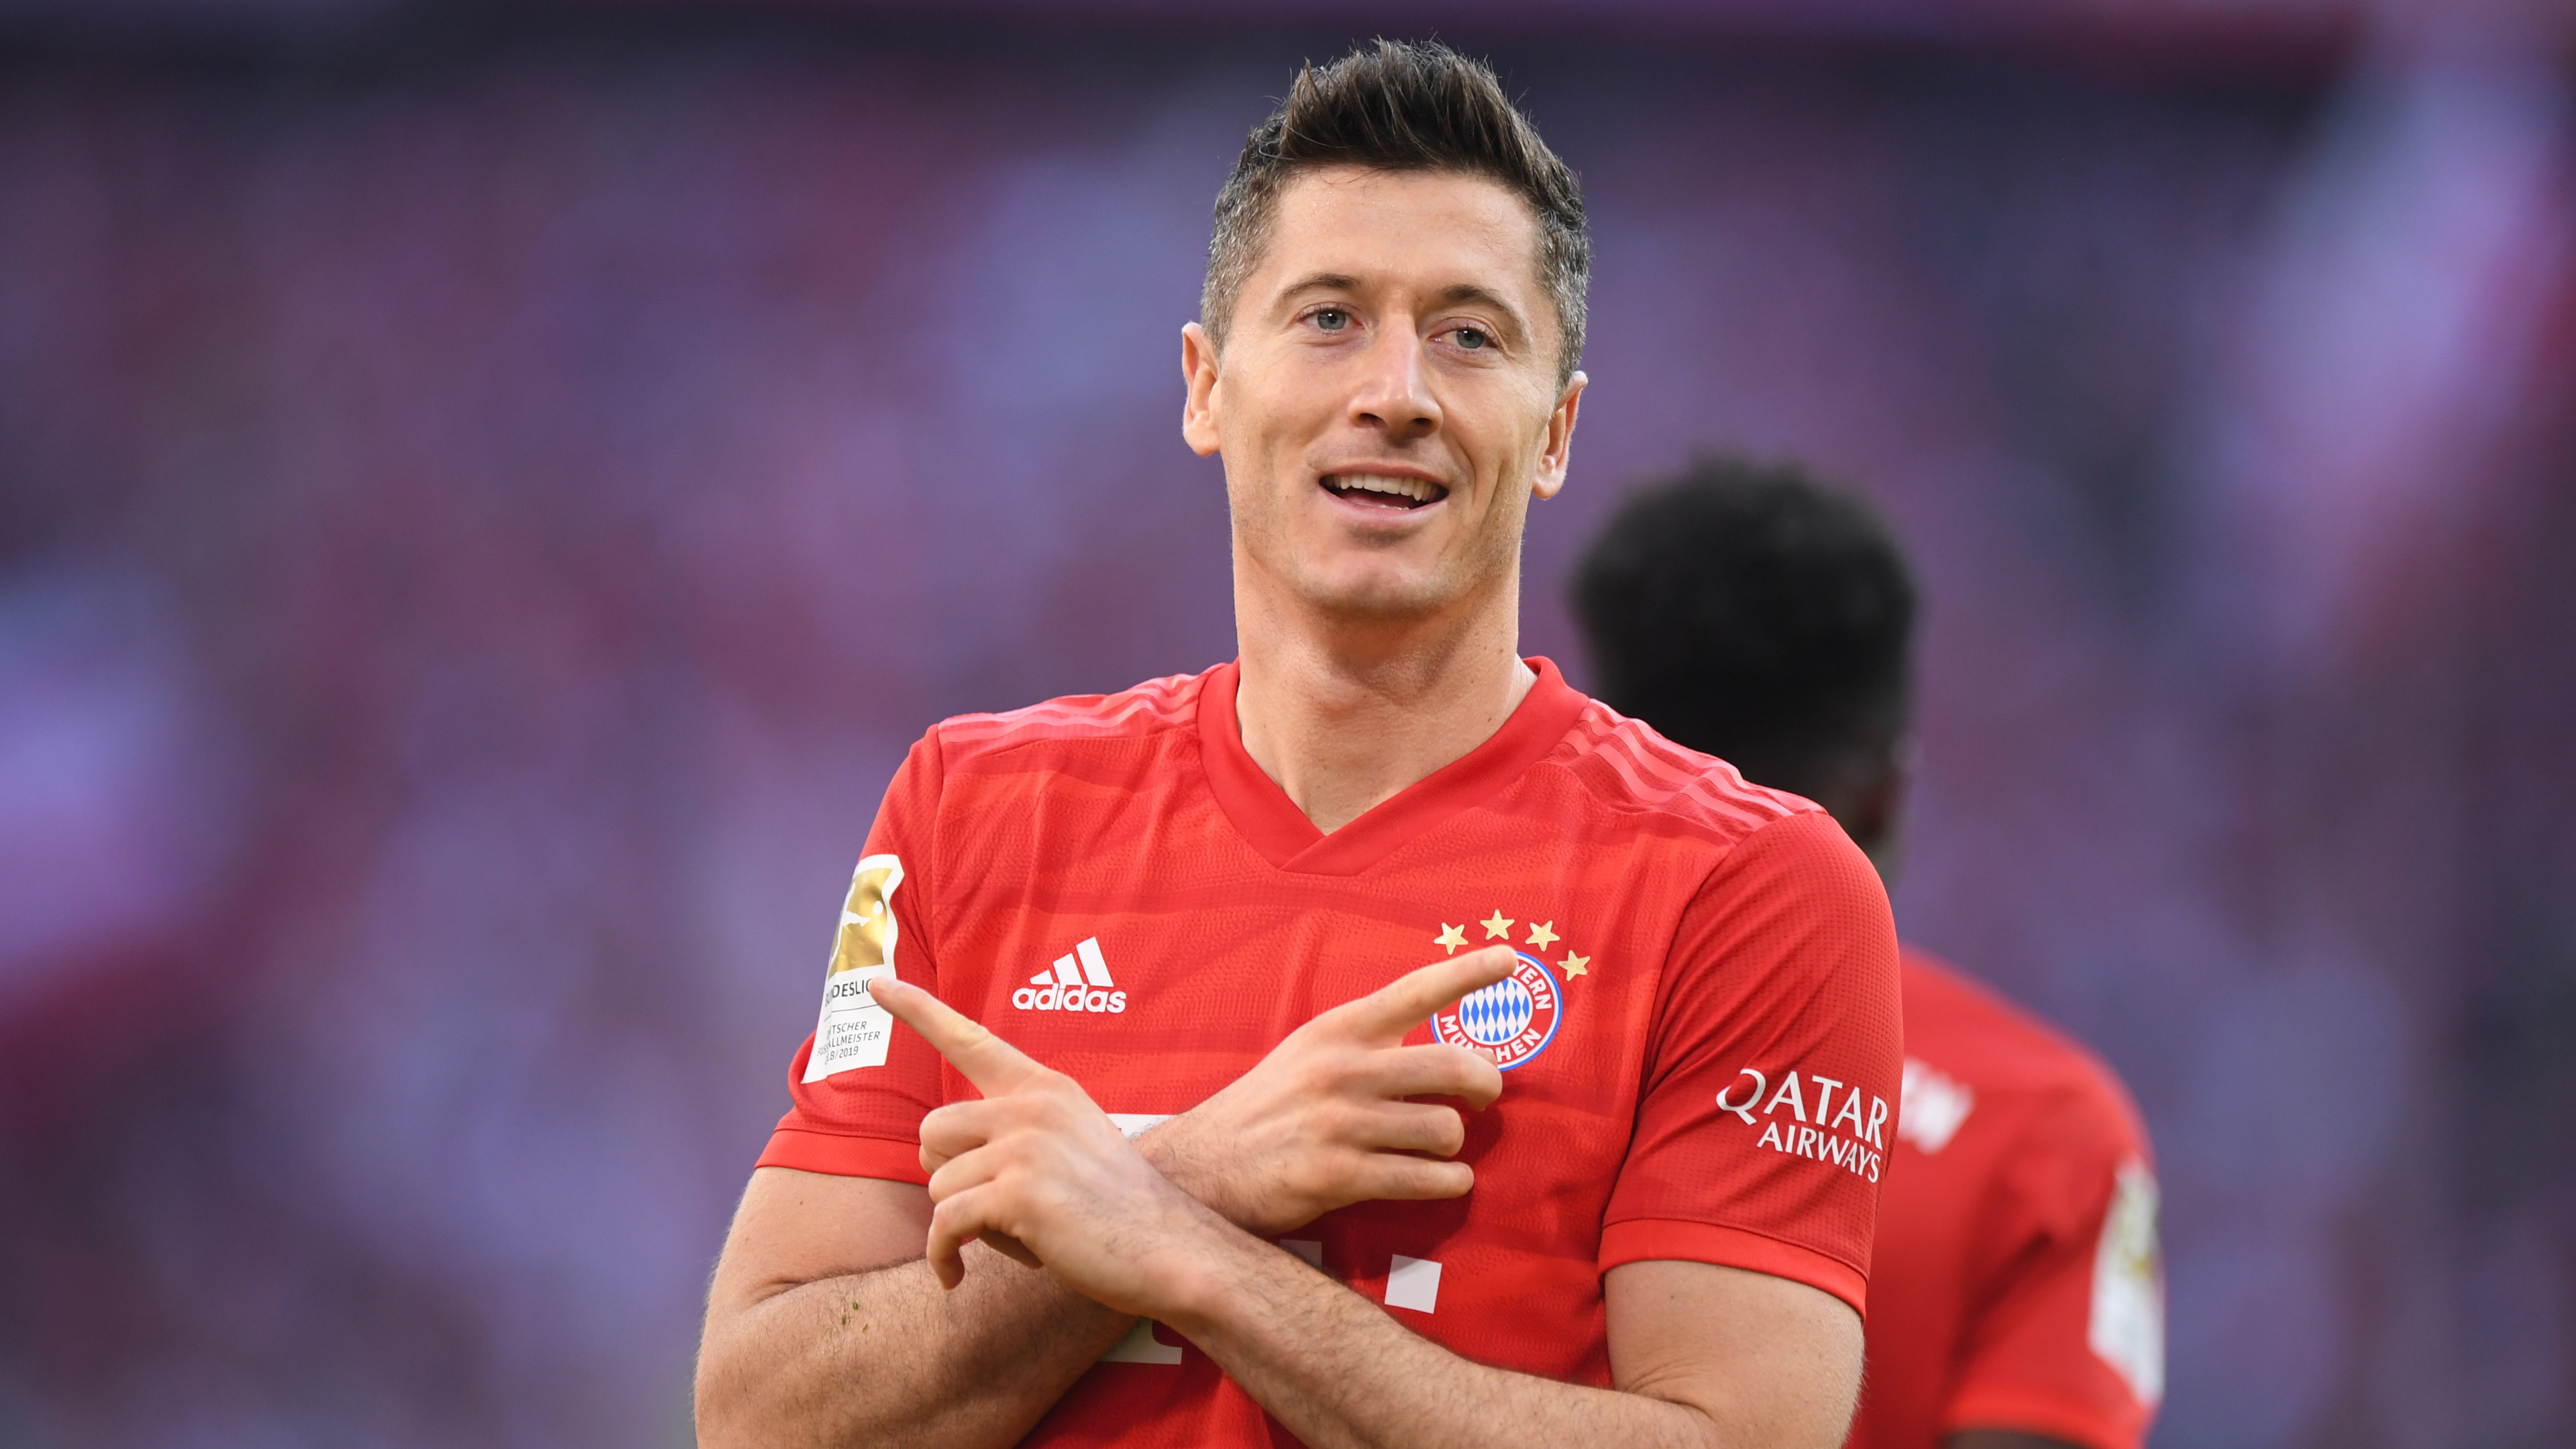 The best is yet to come!' - Lewandowski believes he can get even ...